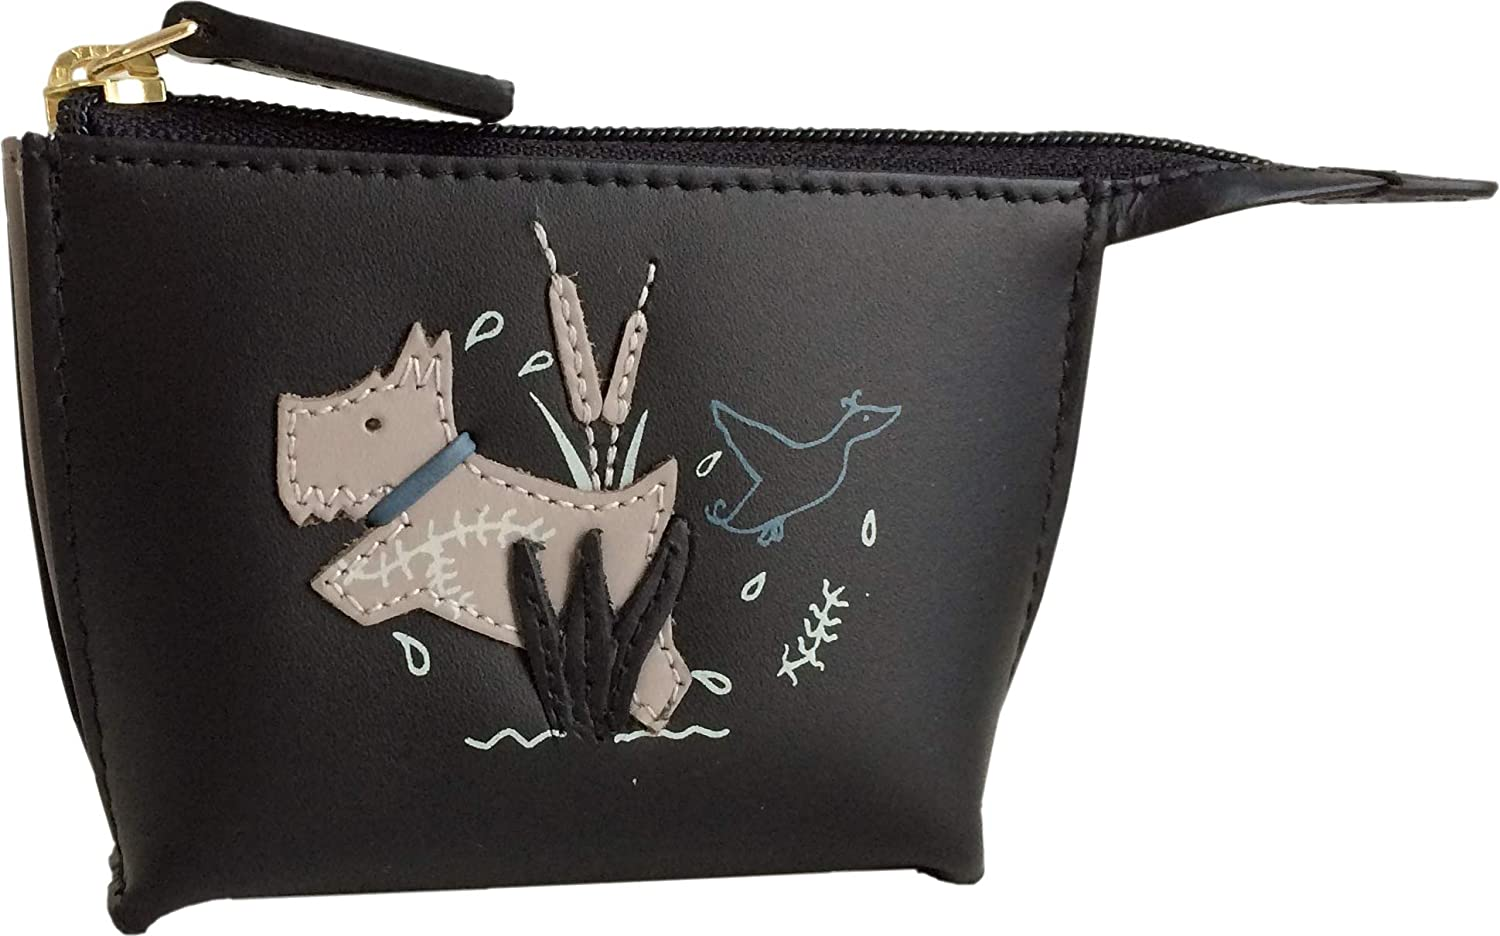 Radley'The Dog And The Duck' Small Leather Coin Purse in Black